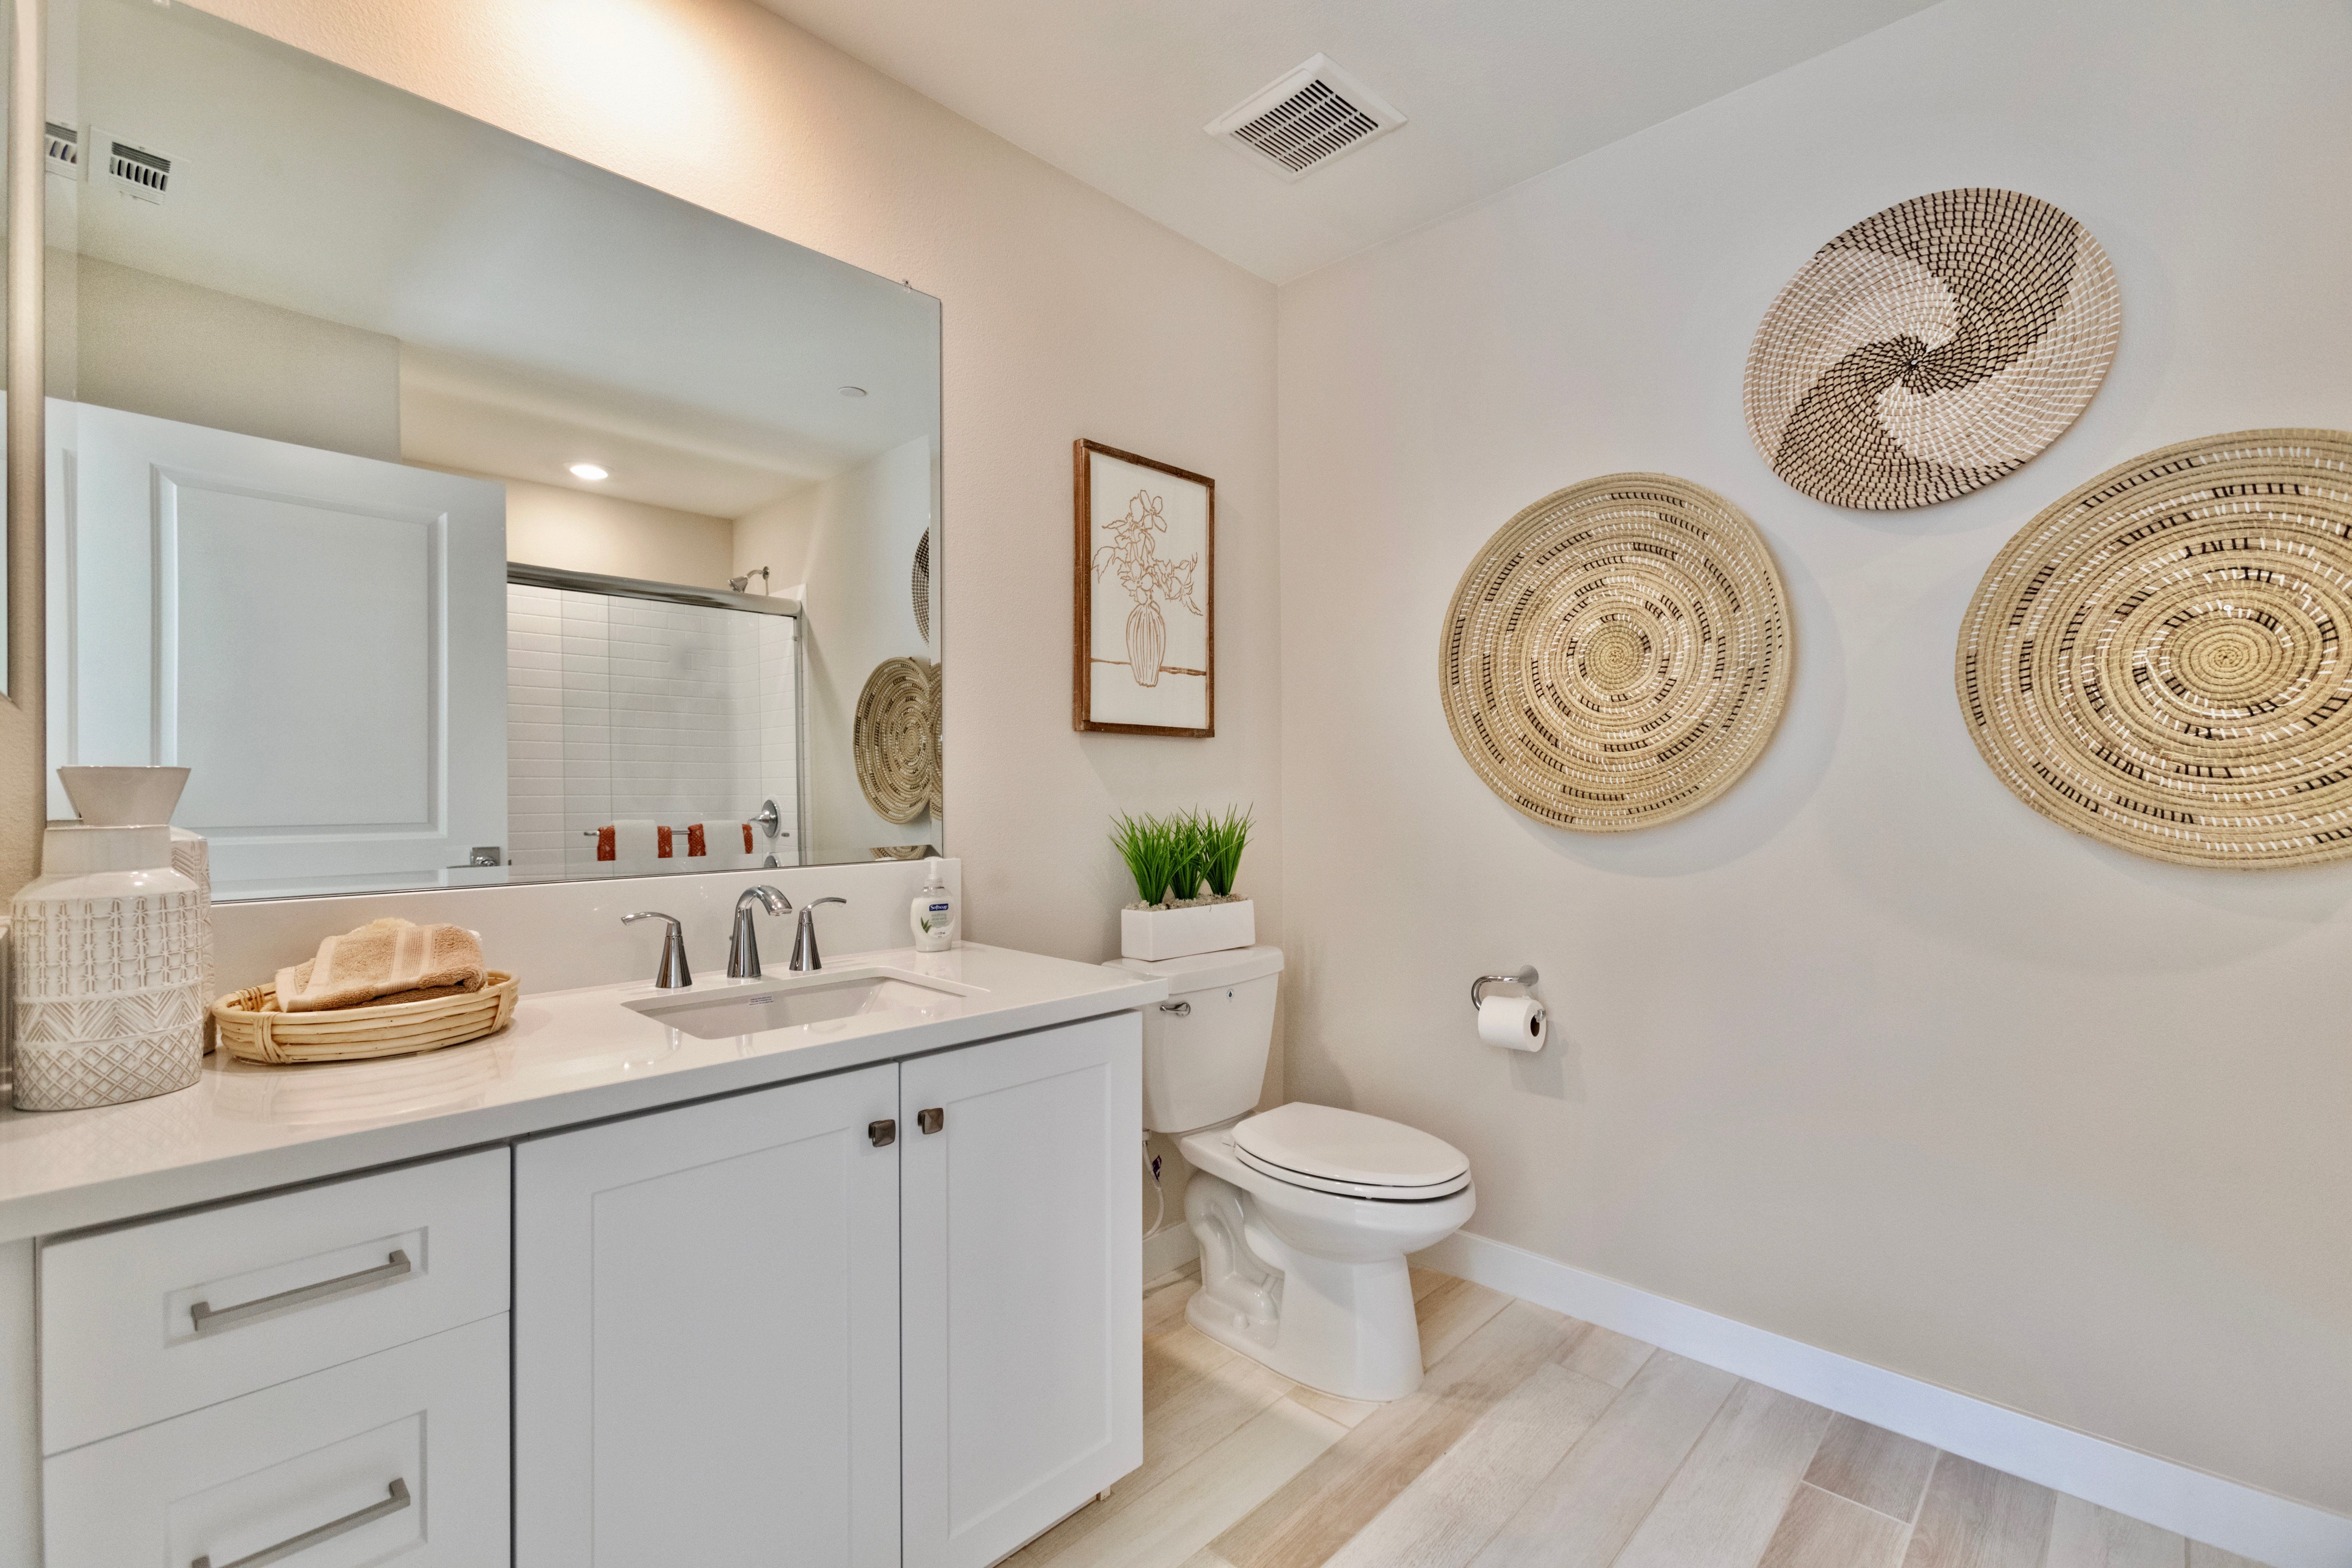 Bathroom featured in the Residence 2 By Lennar in Los Angeles, CA